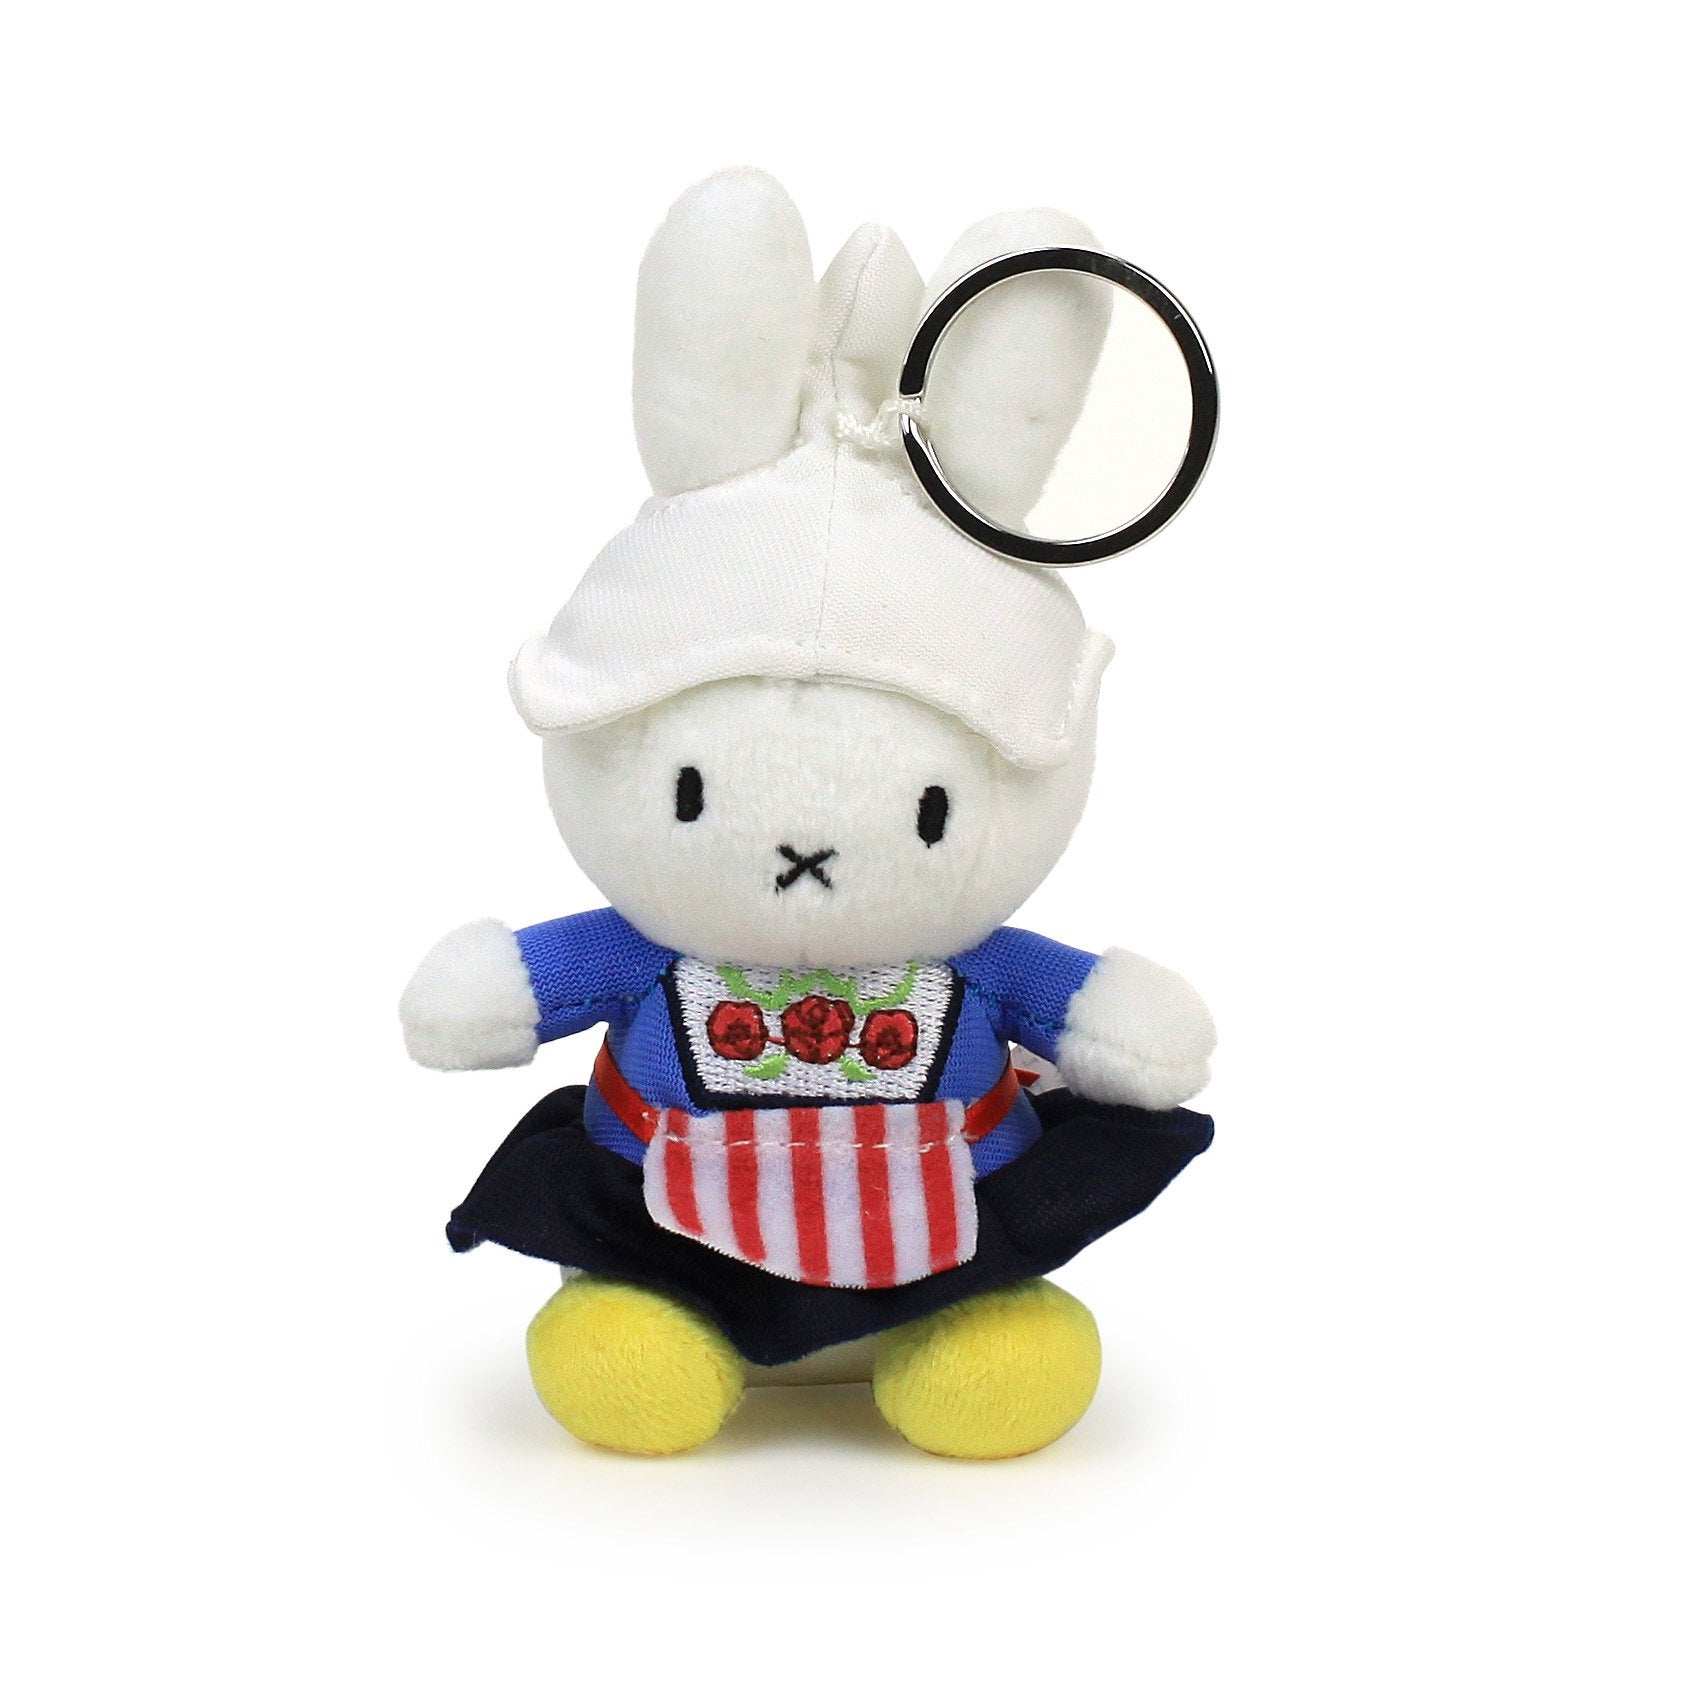 Miffy Corduroy Keychain, Farmers Wife